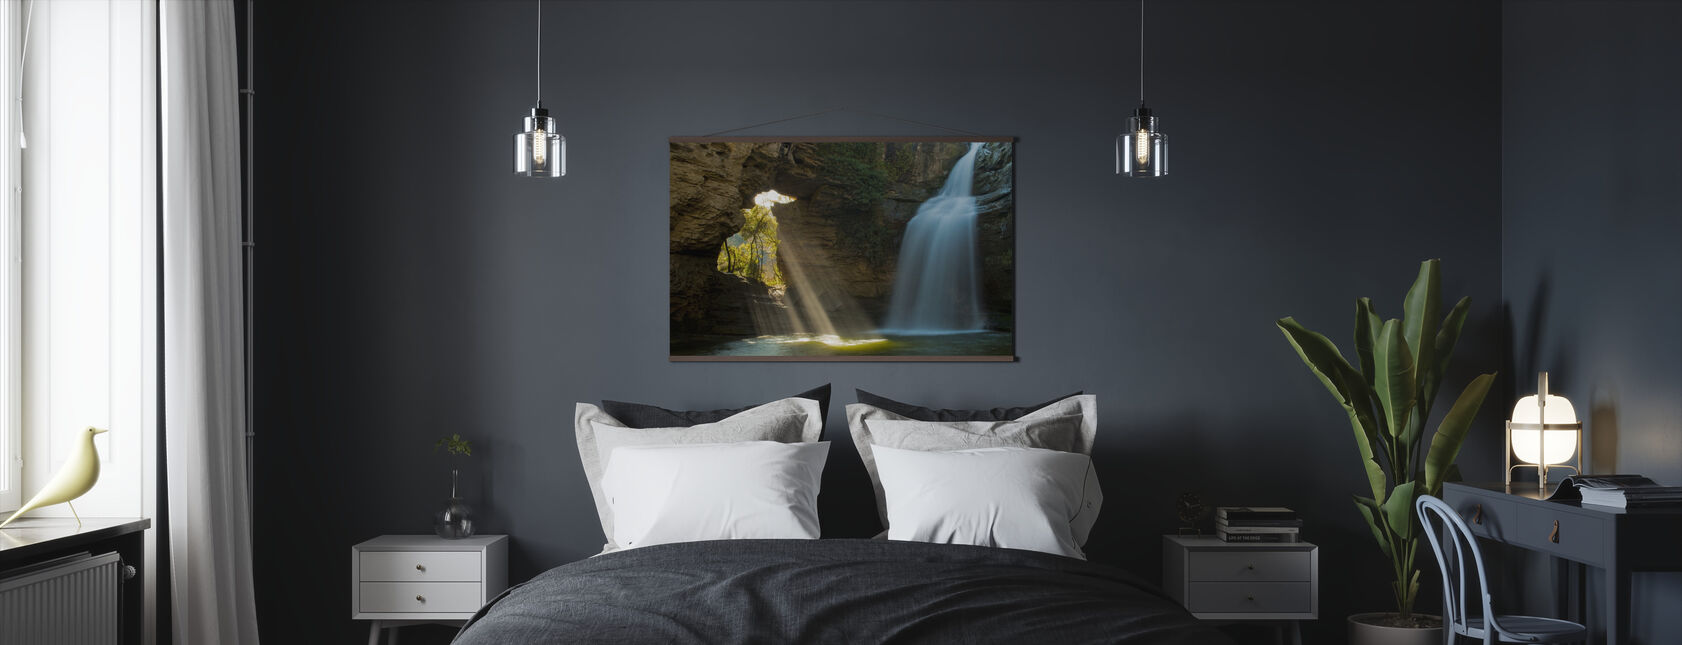 Secret Cave - Poster - Bedroom